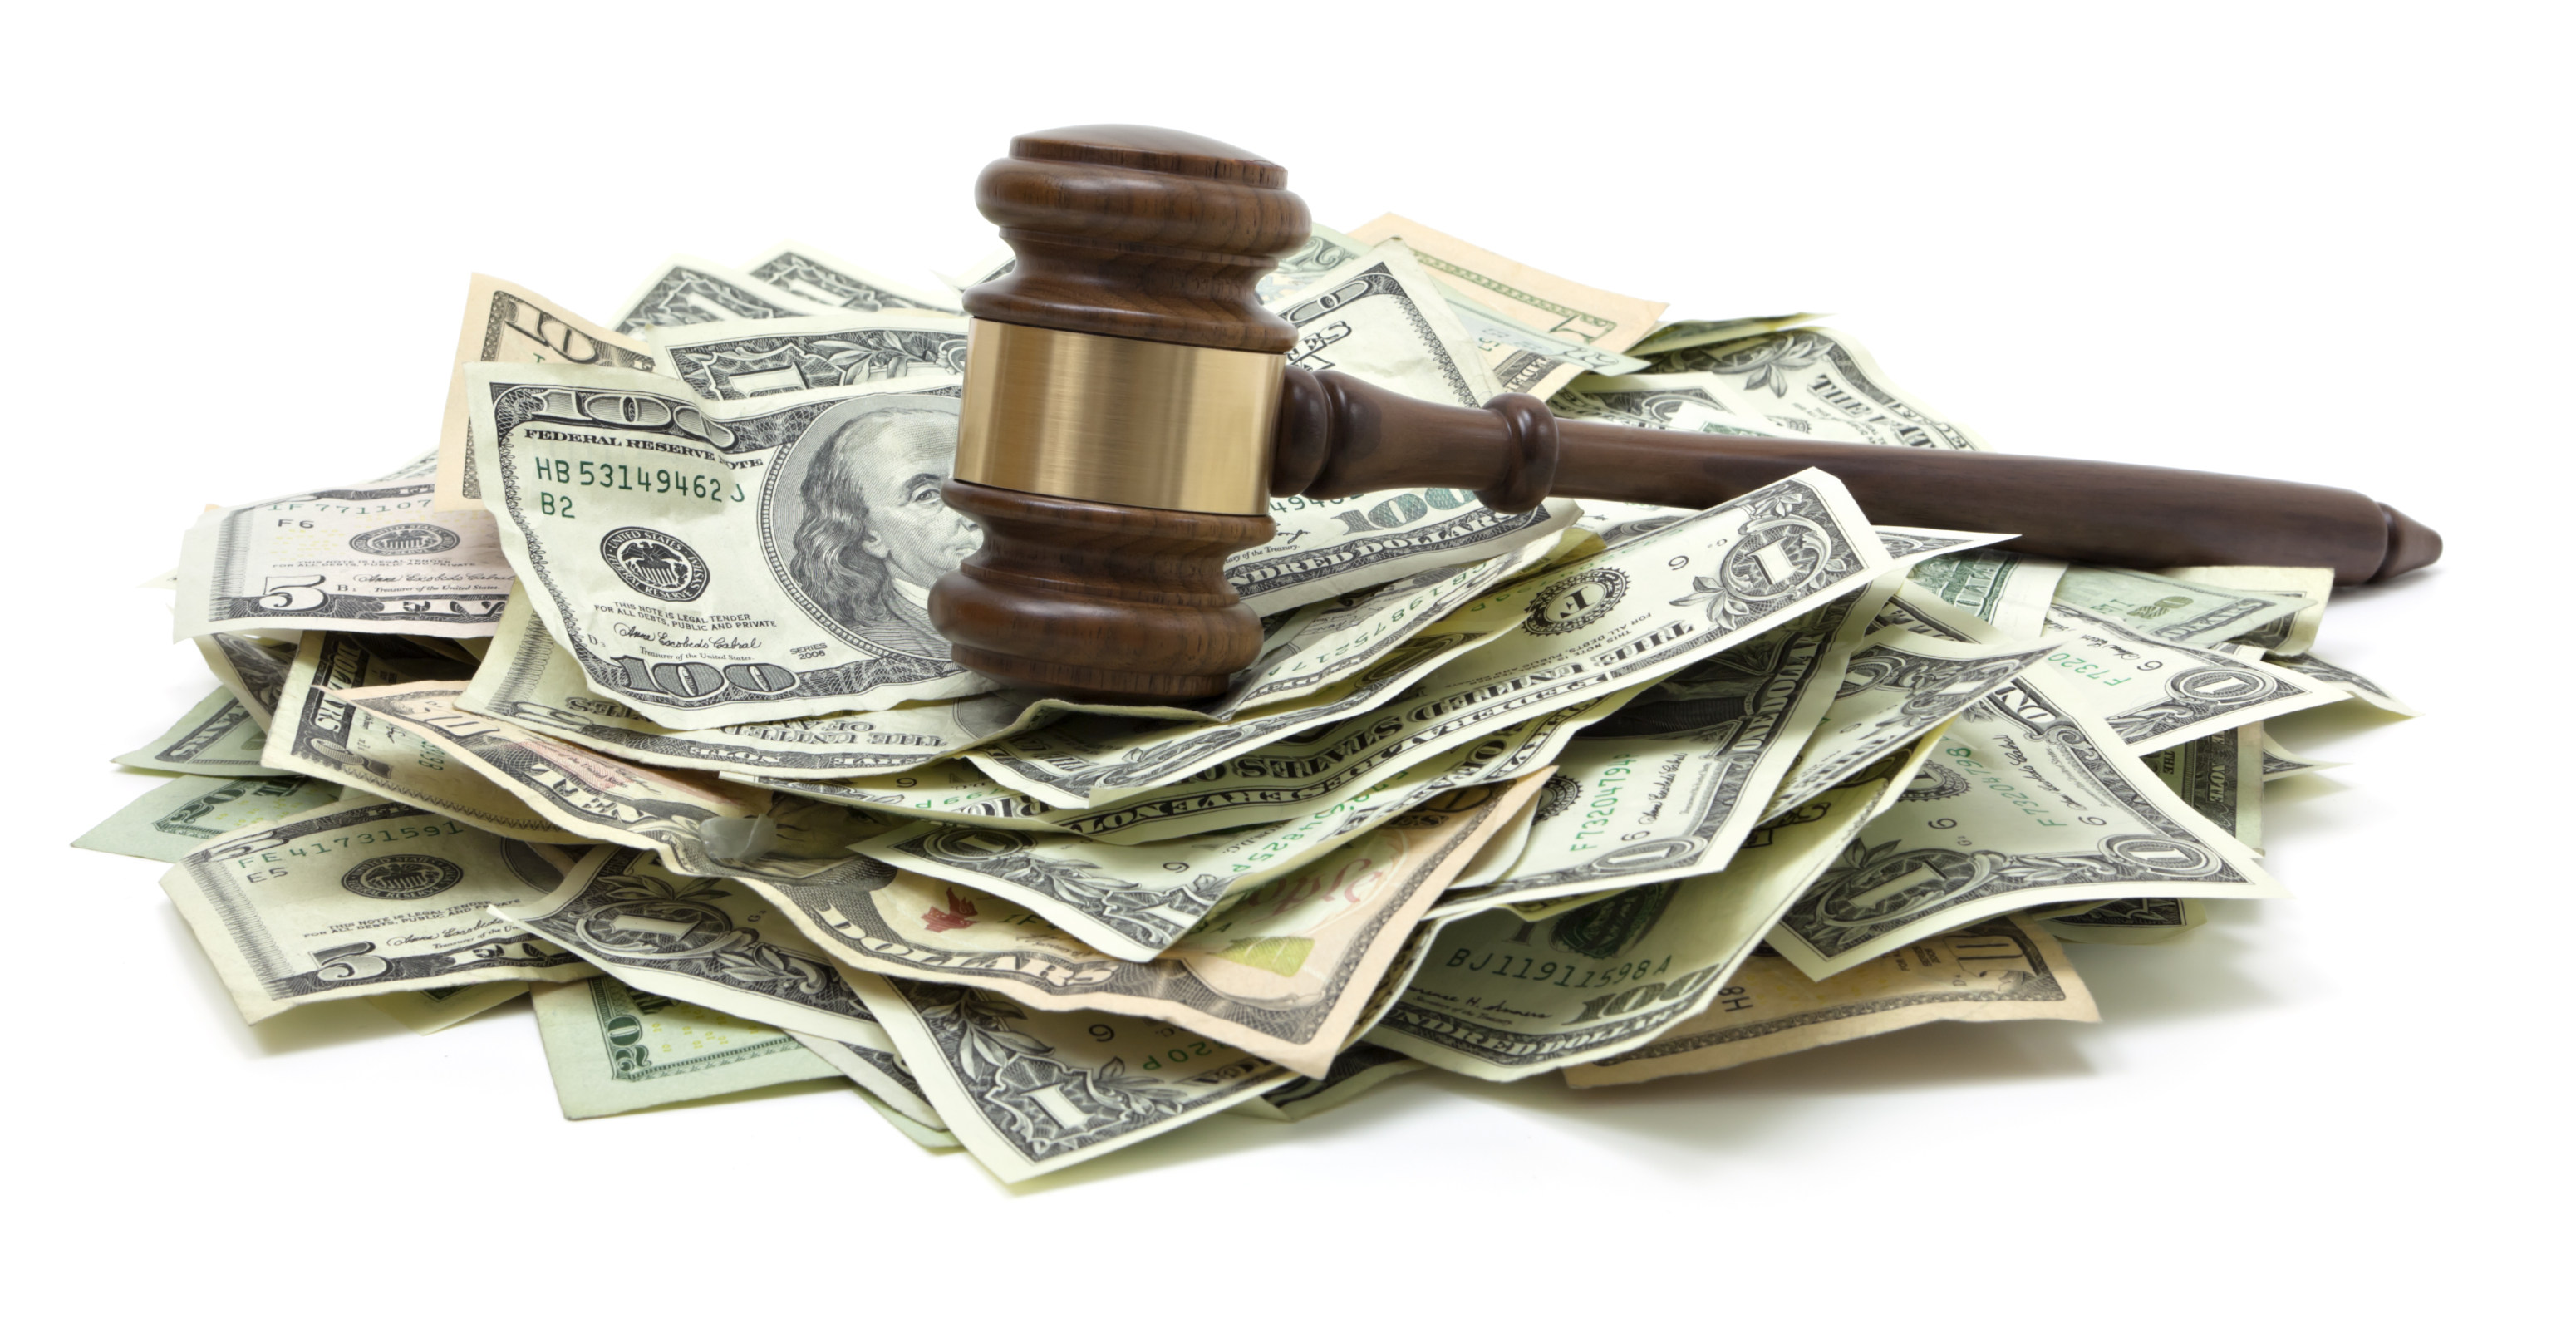 Providing for Attorney Fees in a Contract